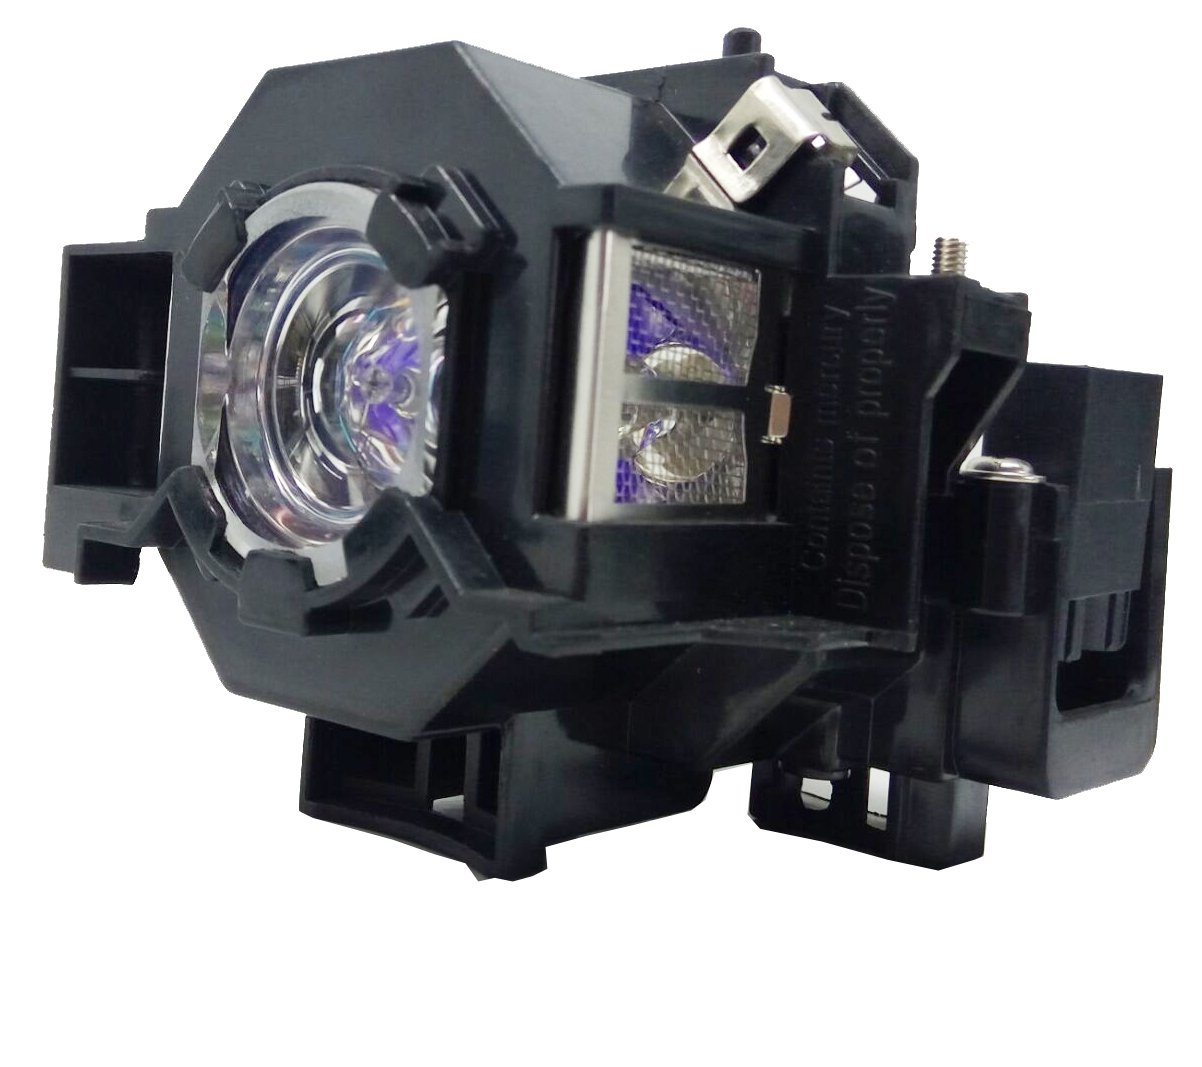 BORYLI ELP-LP41Replacement Projector Lamp Housing PowerLite S6,PowerLite S5, EMP-S5+, EMP-X5,